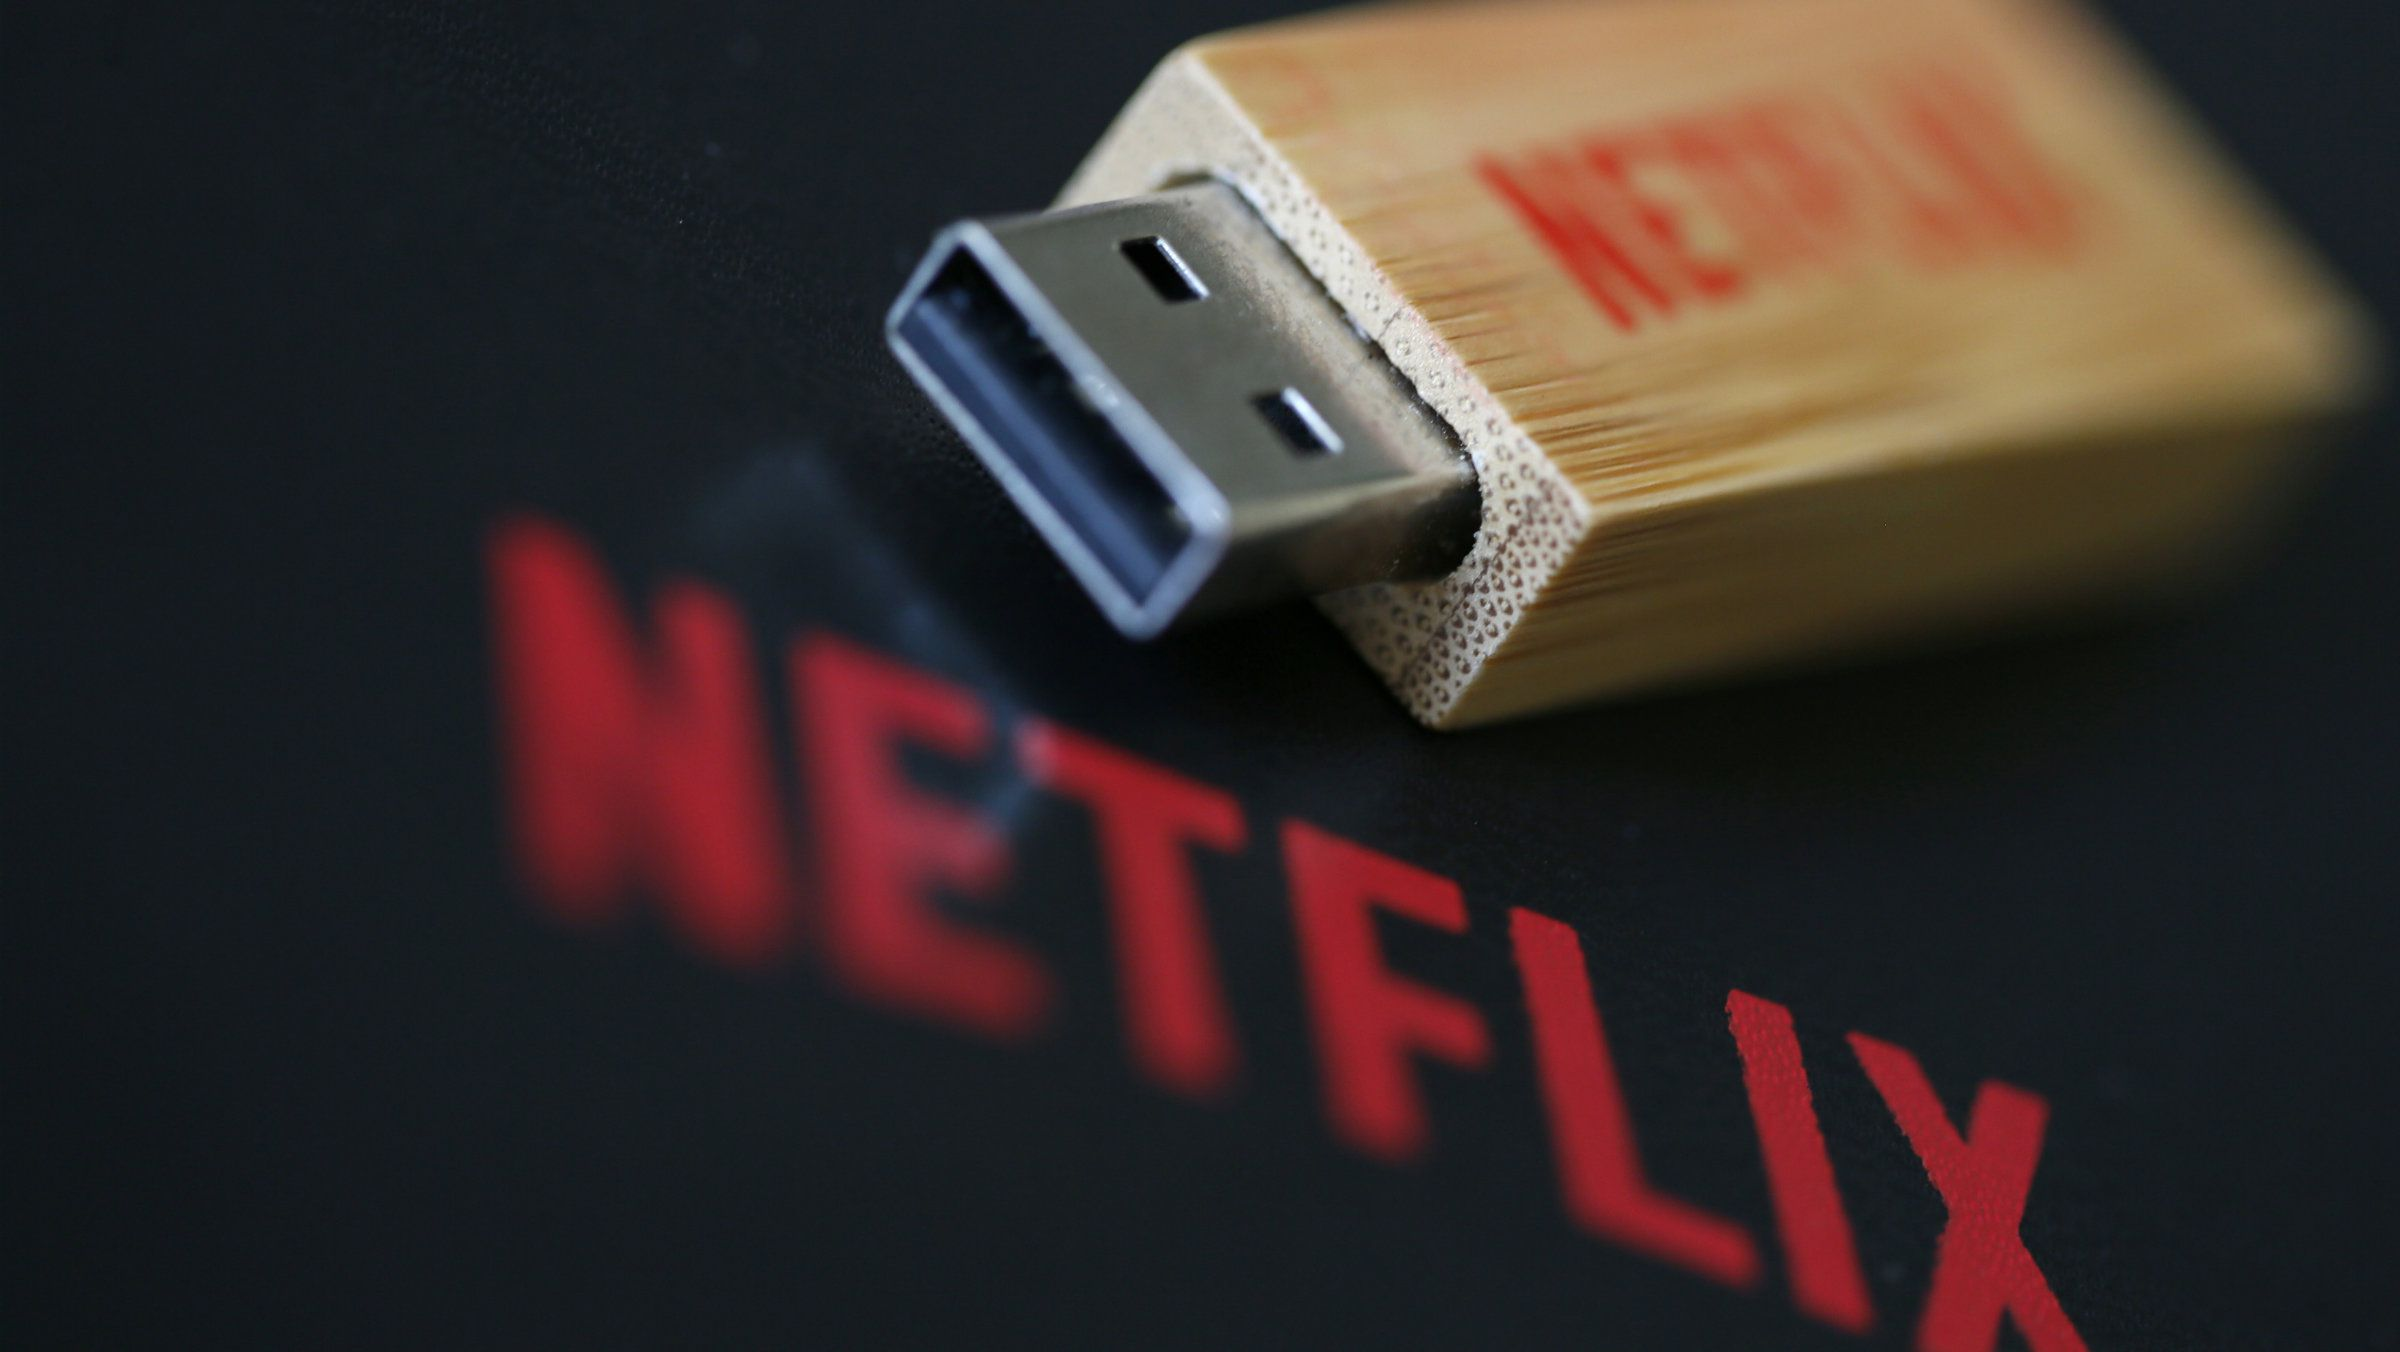 An USB key with the logo of Netflix, the American provider of on-demand Internet streaming media, is seen in Paris September 15, 2014.